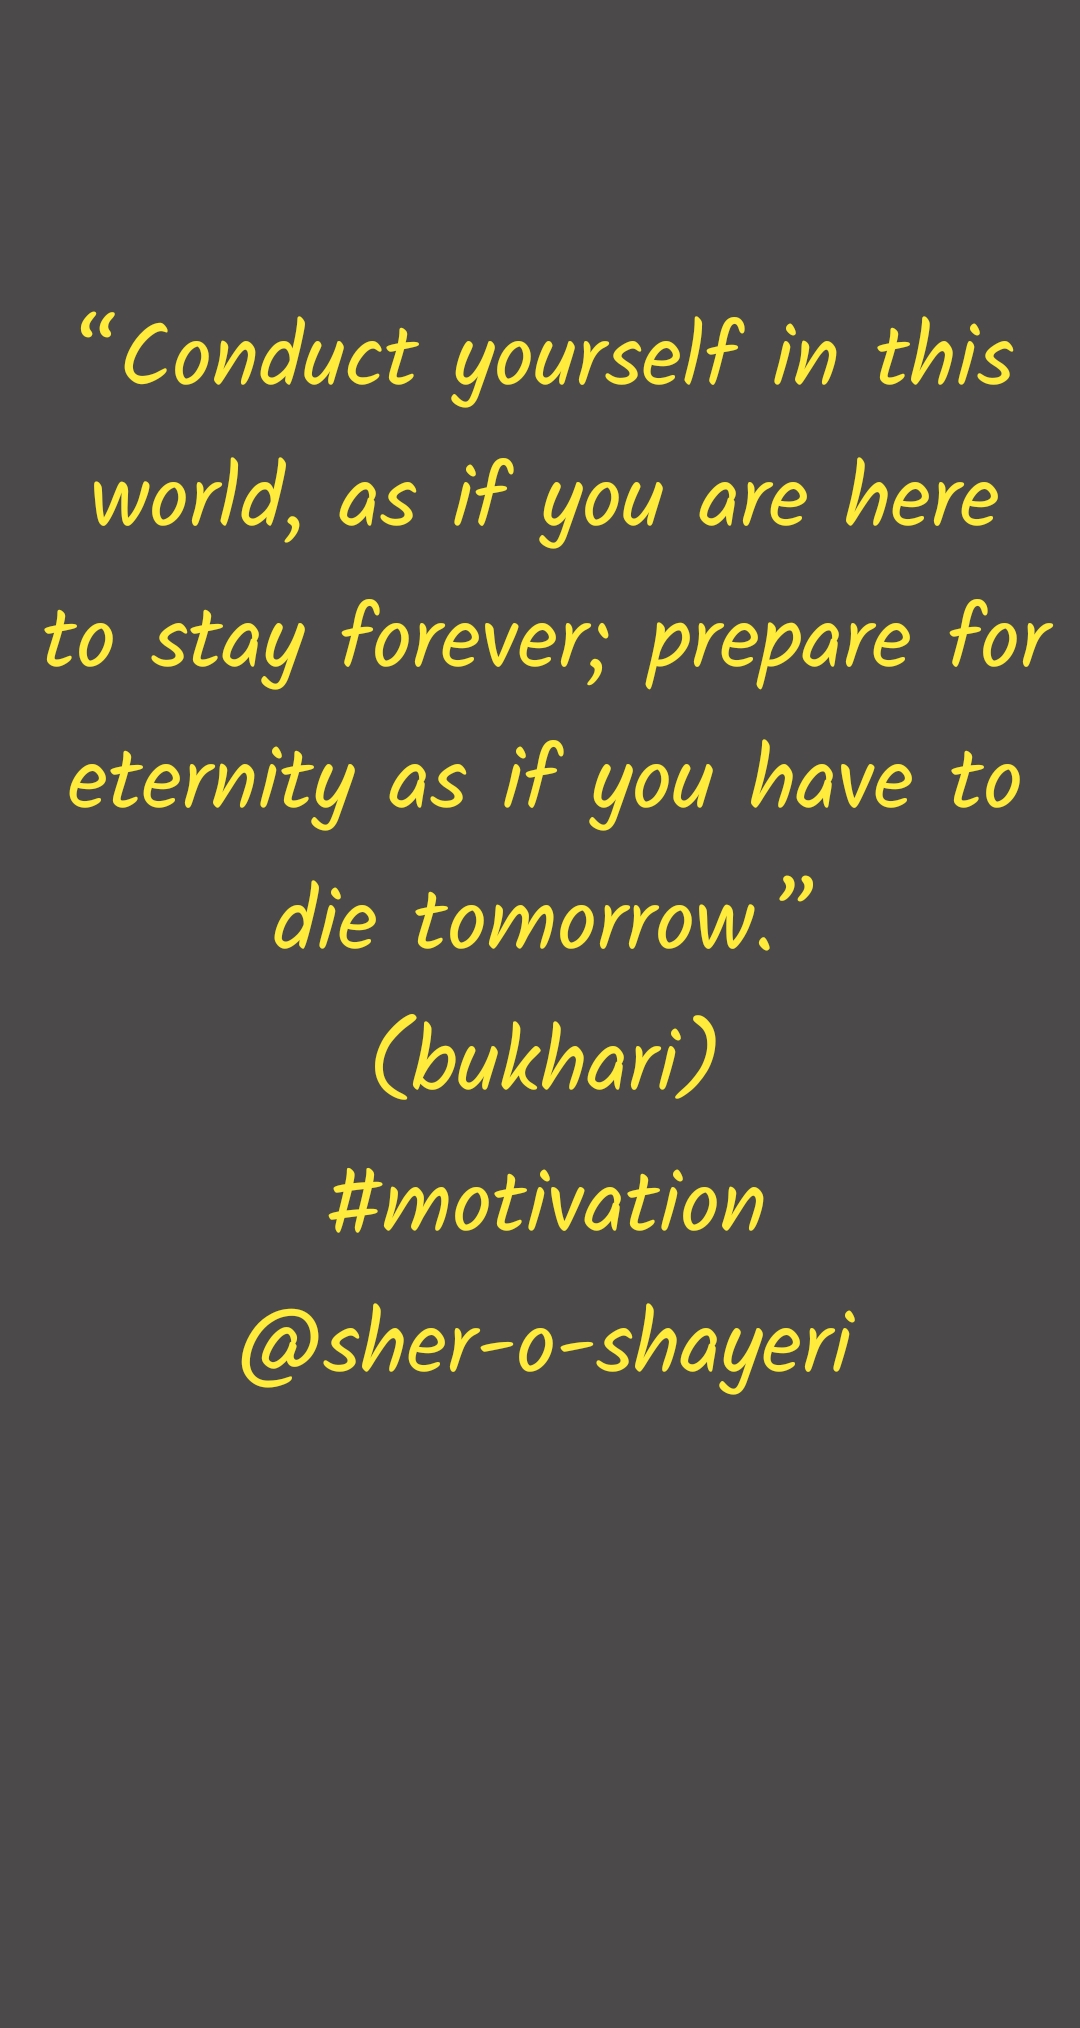 """""""Conduct yourself in this world, as if you are here to stay forever; prepare for eternity as if you have to die tomorrow."""" (bukhari) #motivation @sher-o-shayeri"""